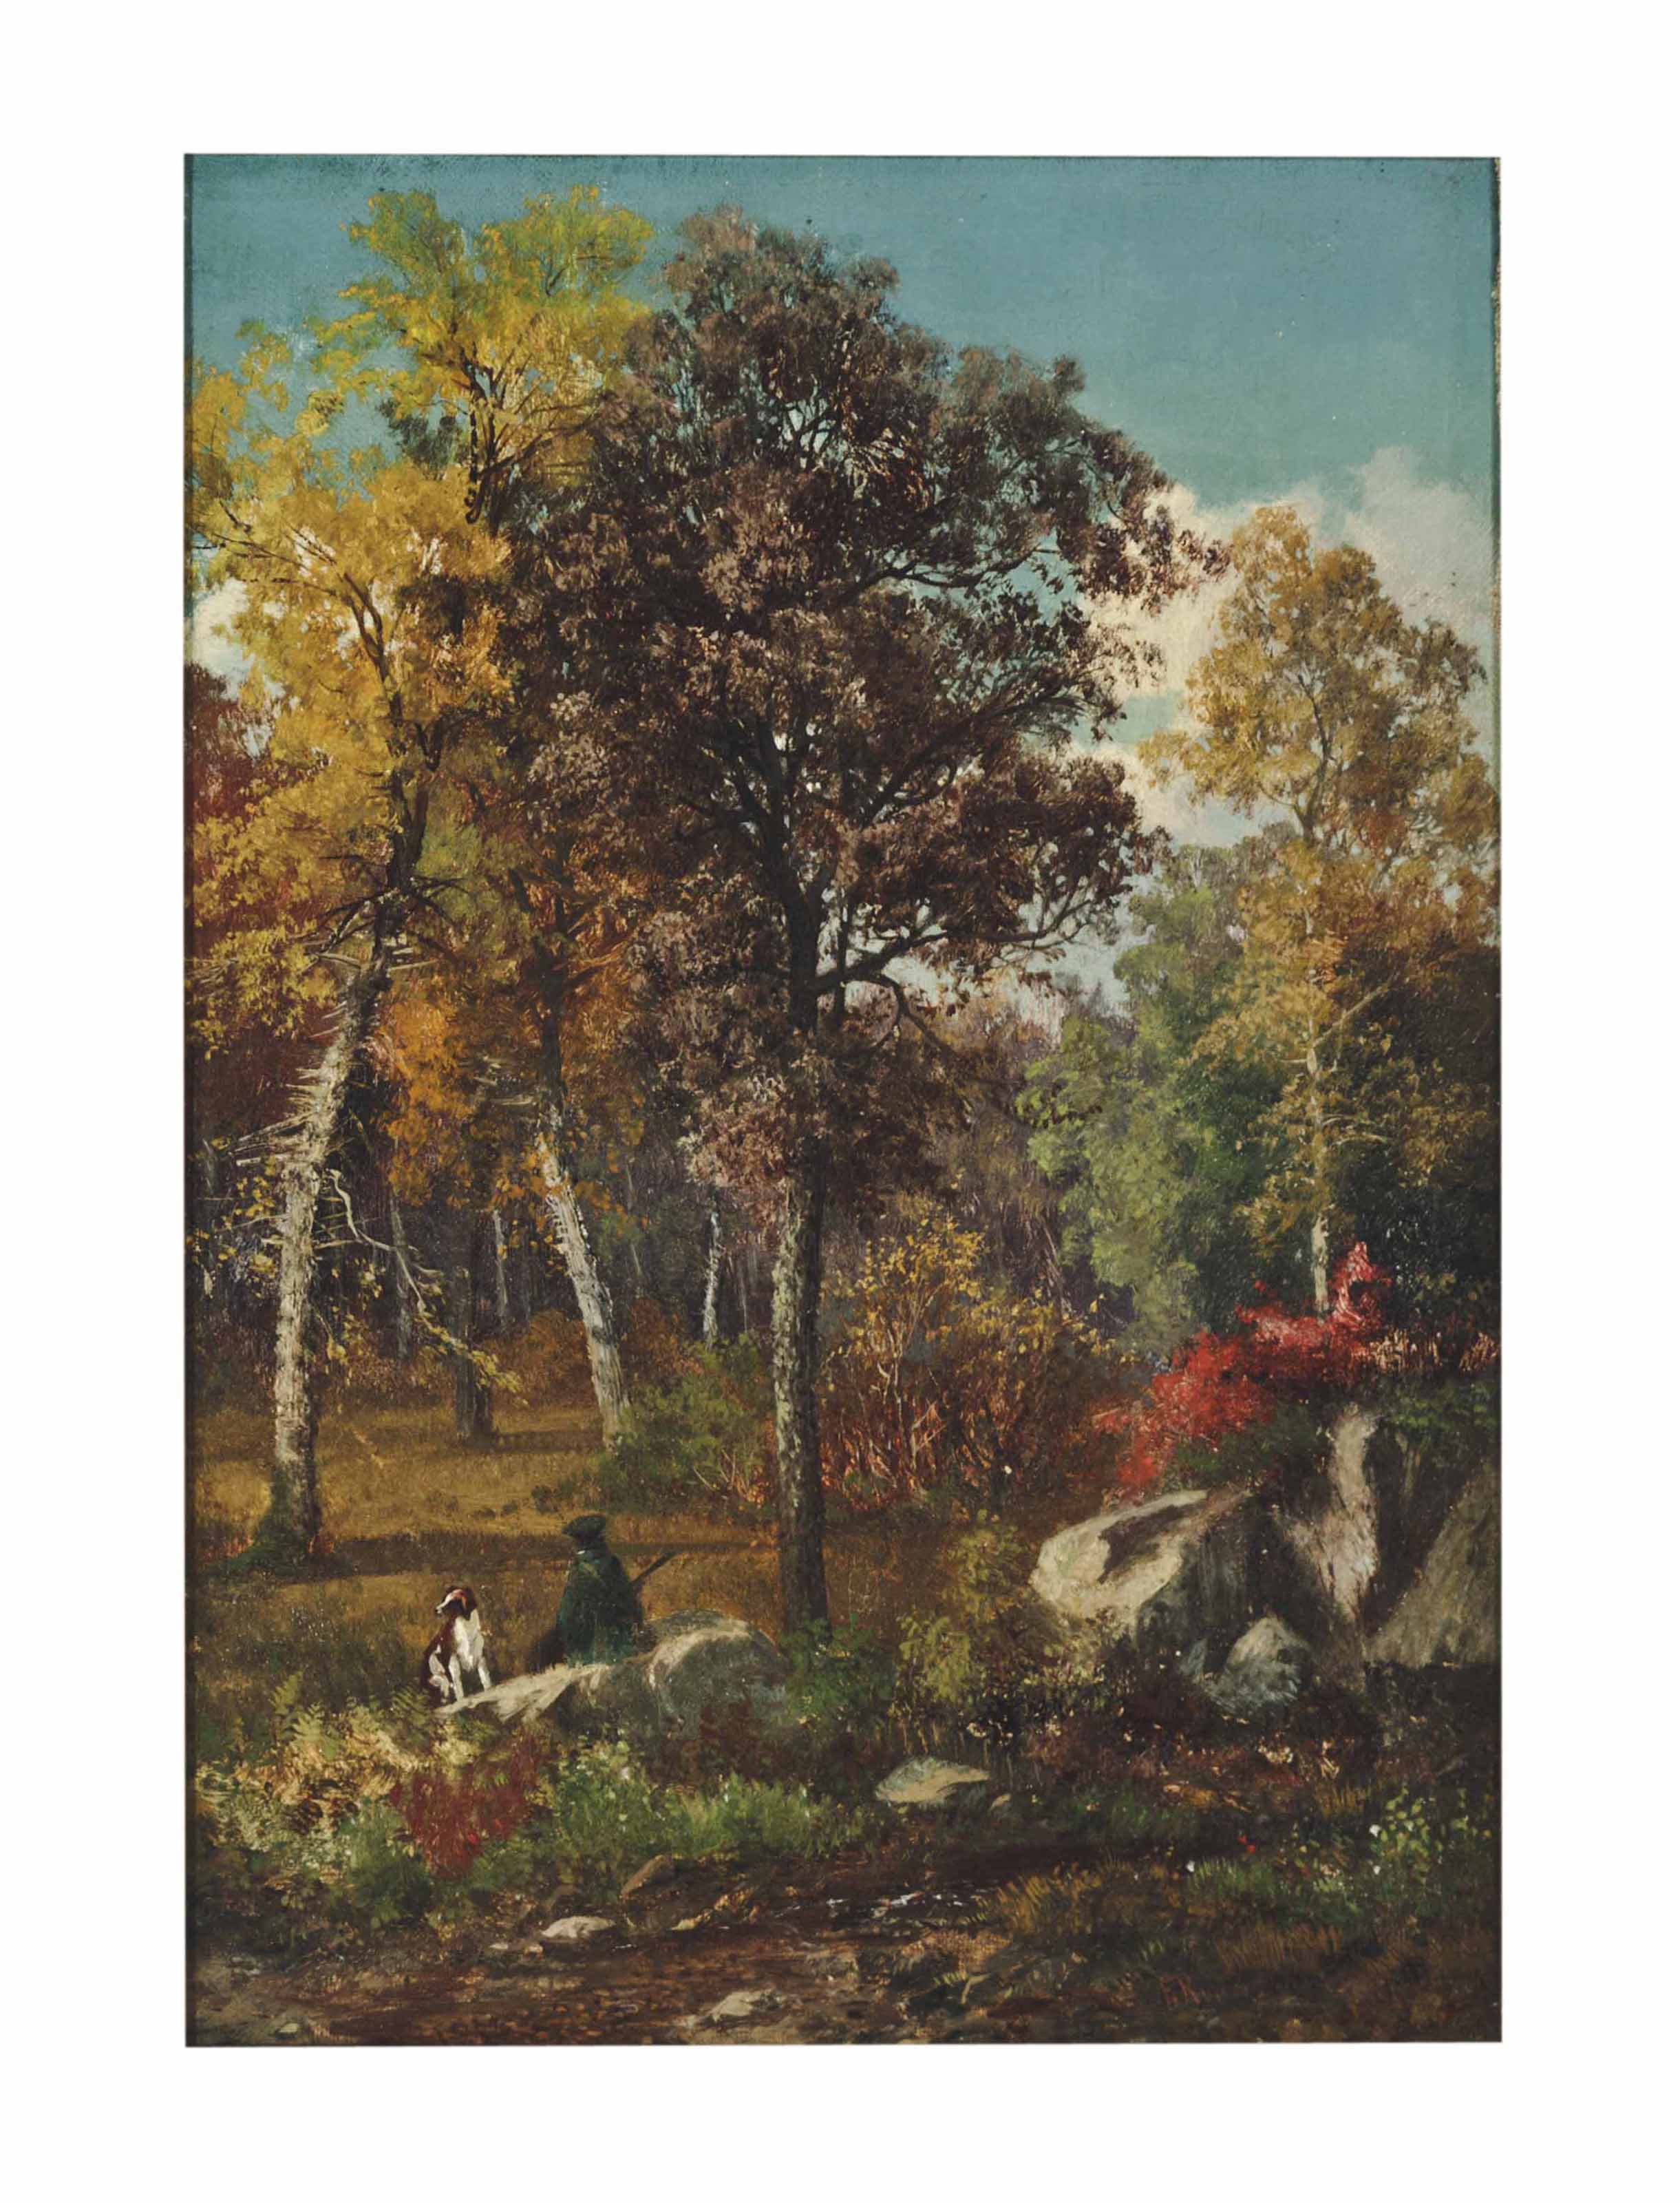 A Hunter and his Dog in a Fall Landscape